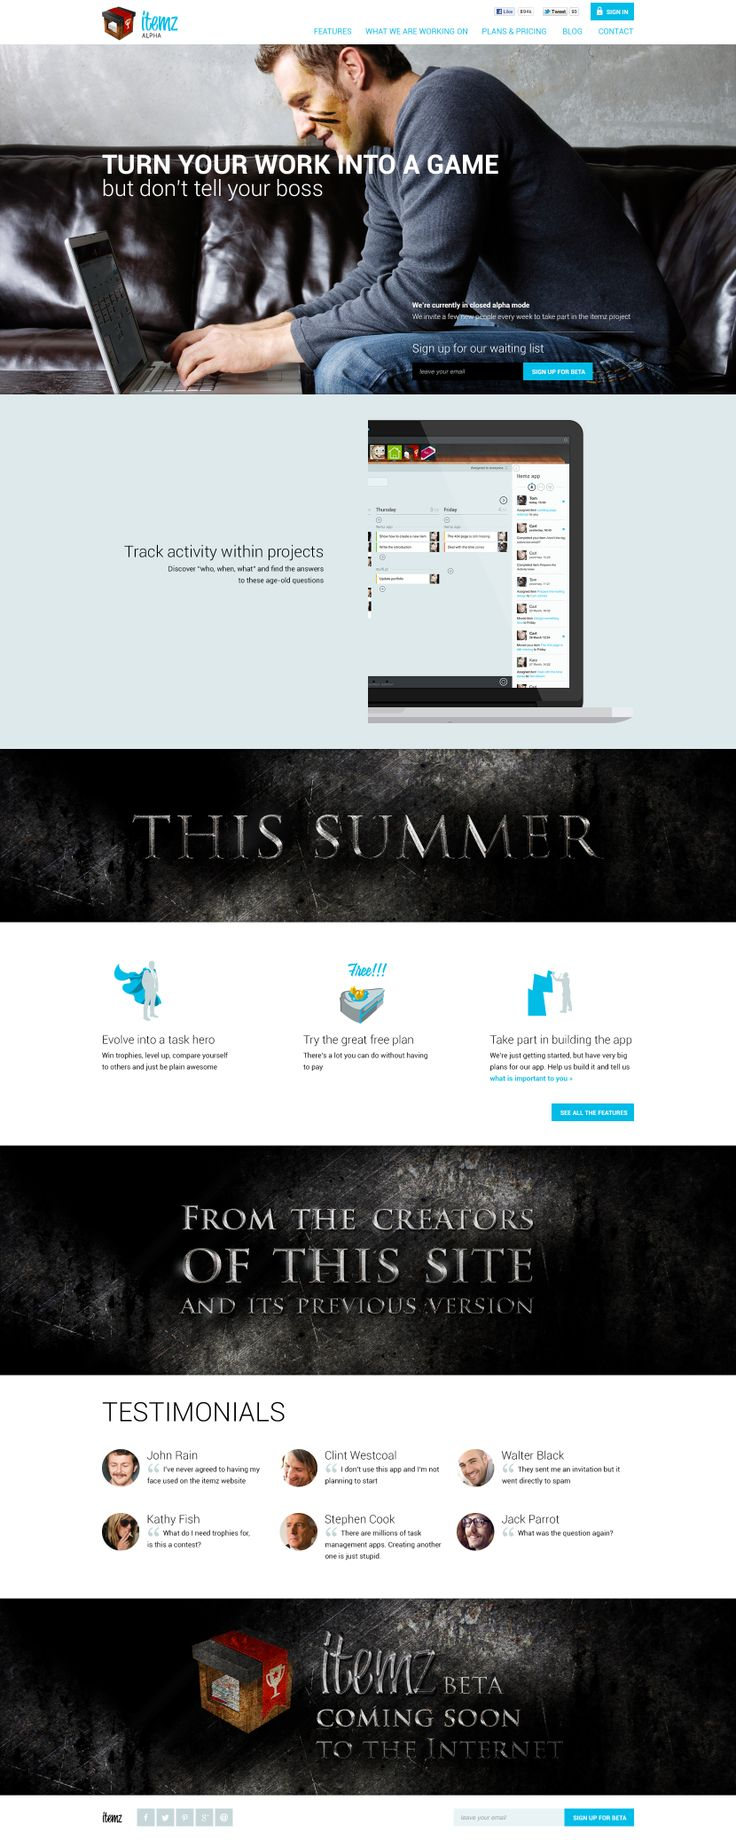 Itemzapp new landing page webdesign. Coming soon...